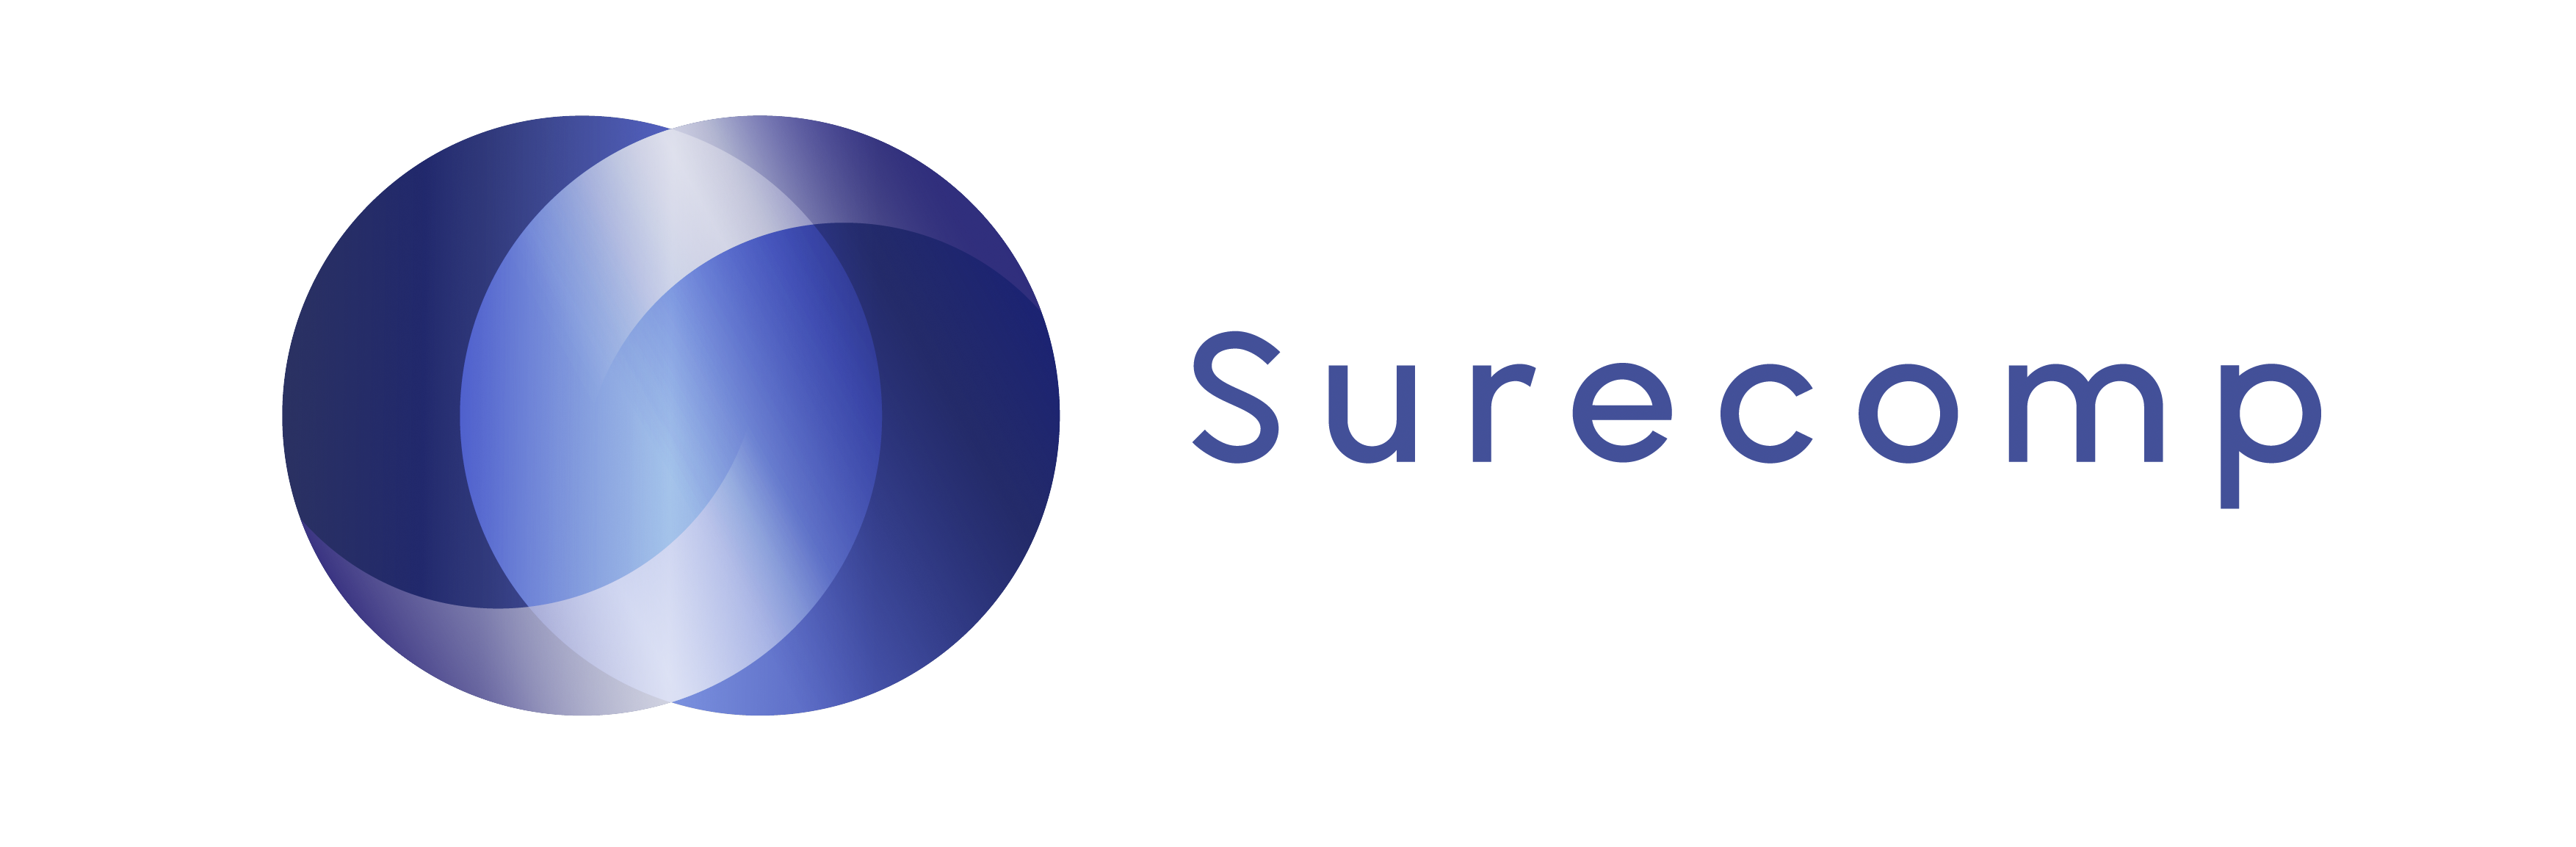 Surecomp Supports DNB With Full SWIFT Readiness Ahead of New 2021 Deadline